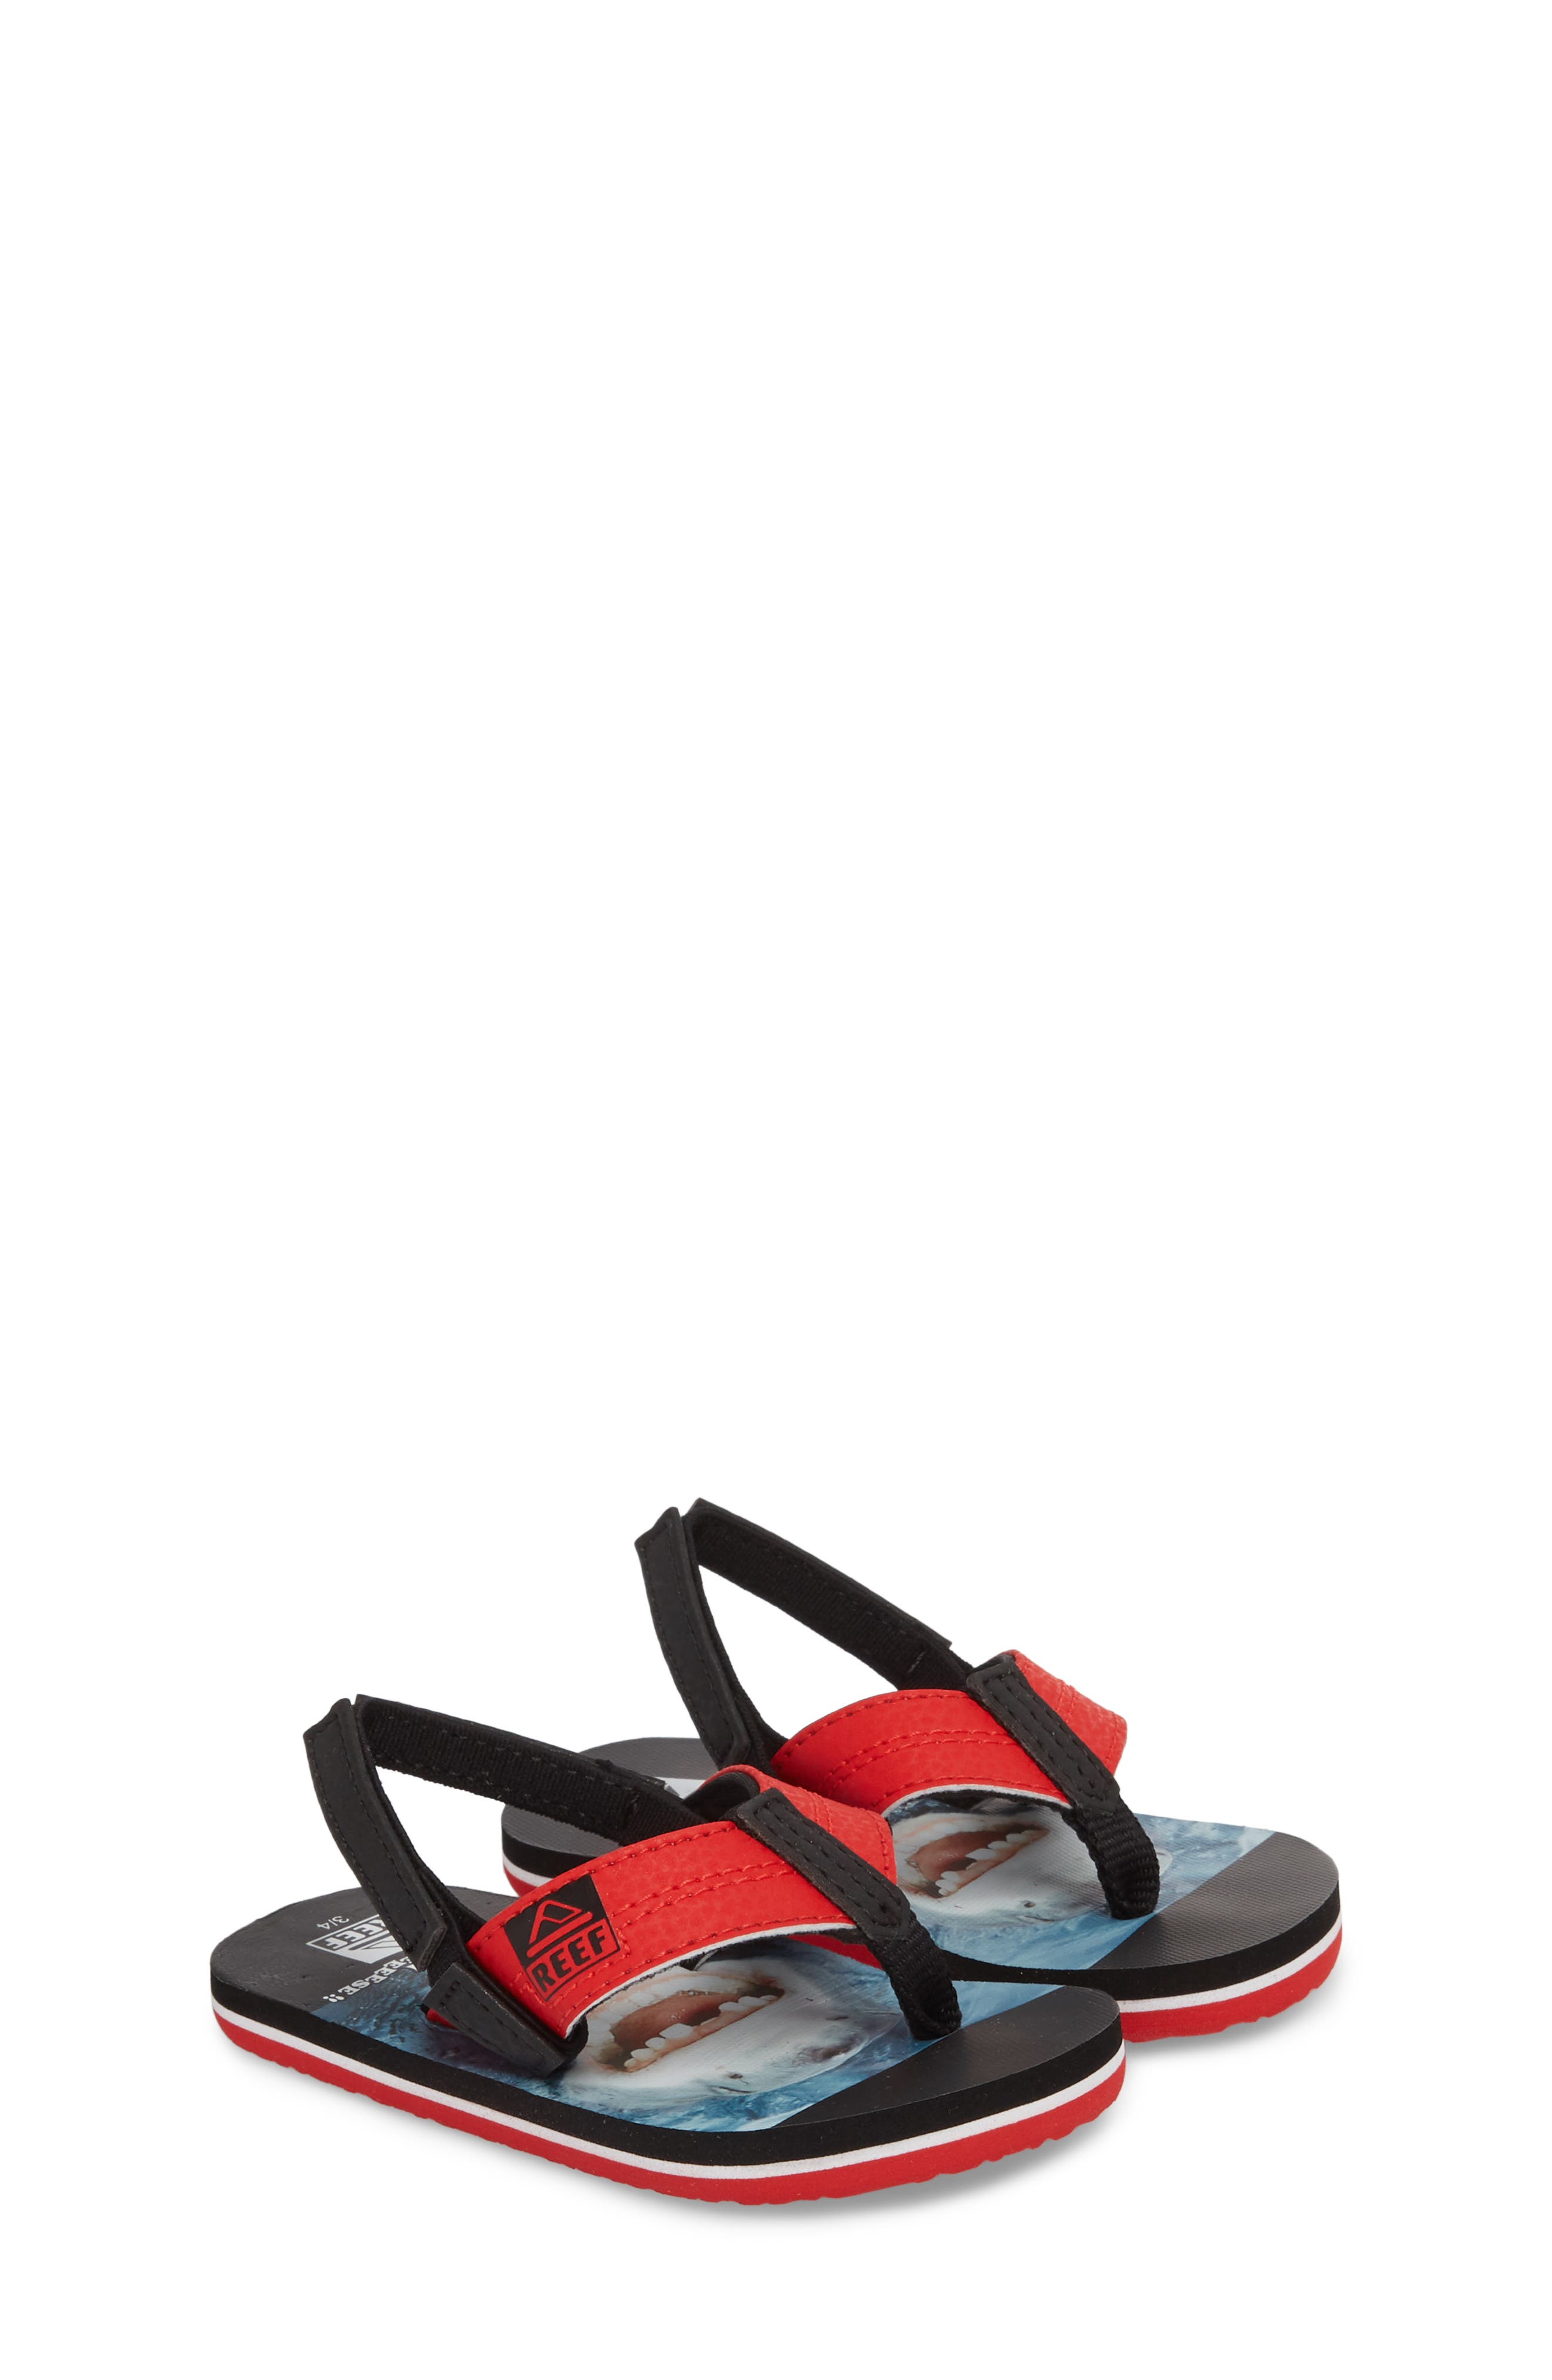 Grom Photo Print Flip Flop,                             Alternate thumbnail 3, color,                             Red